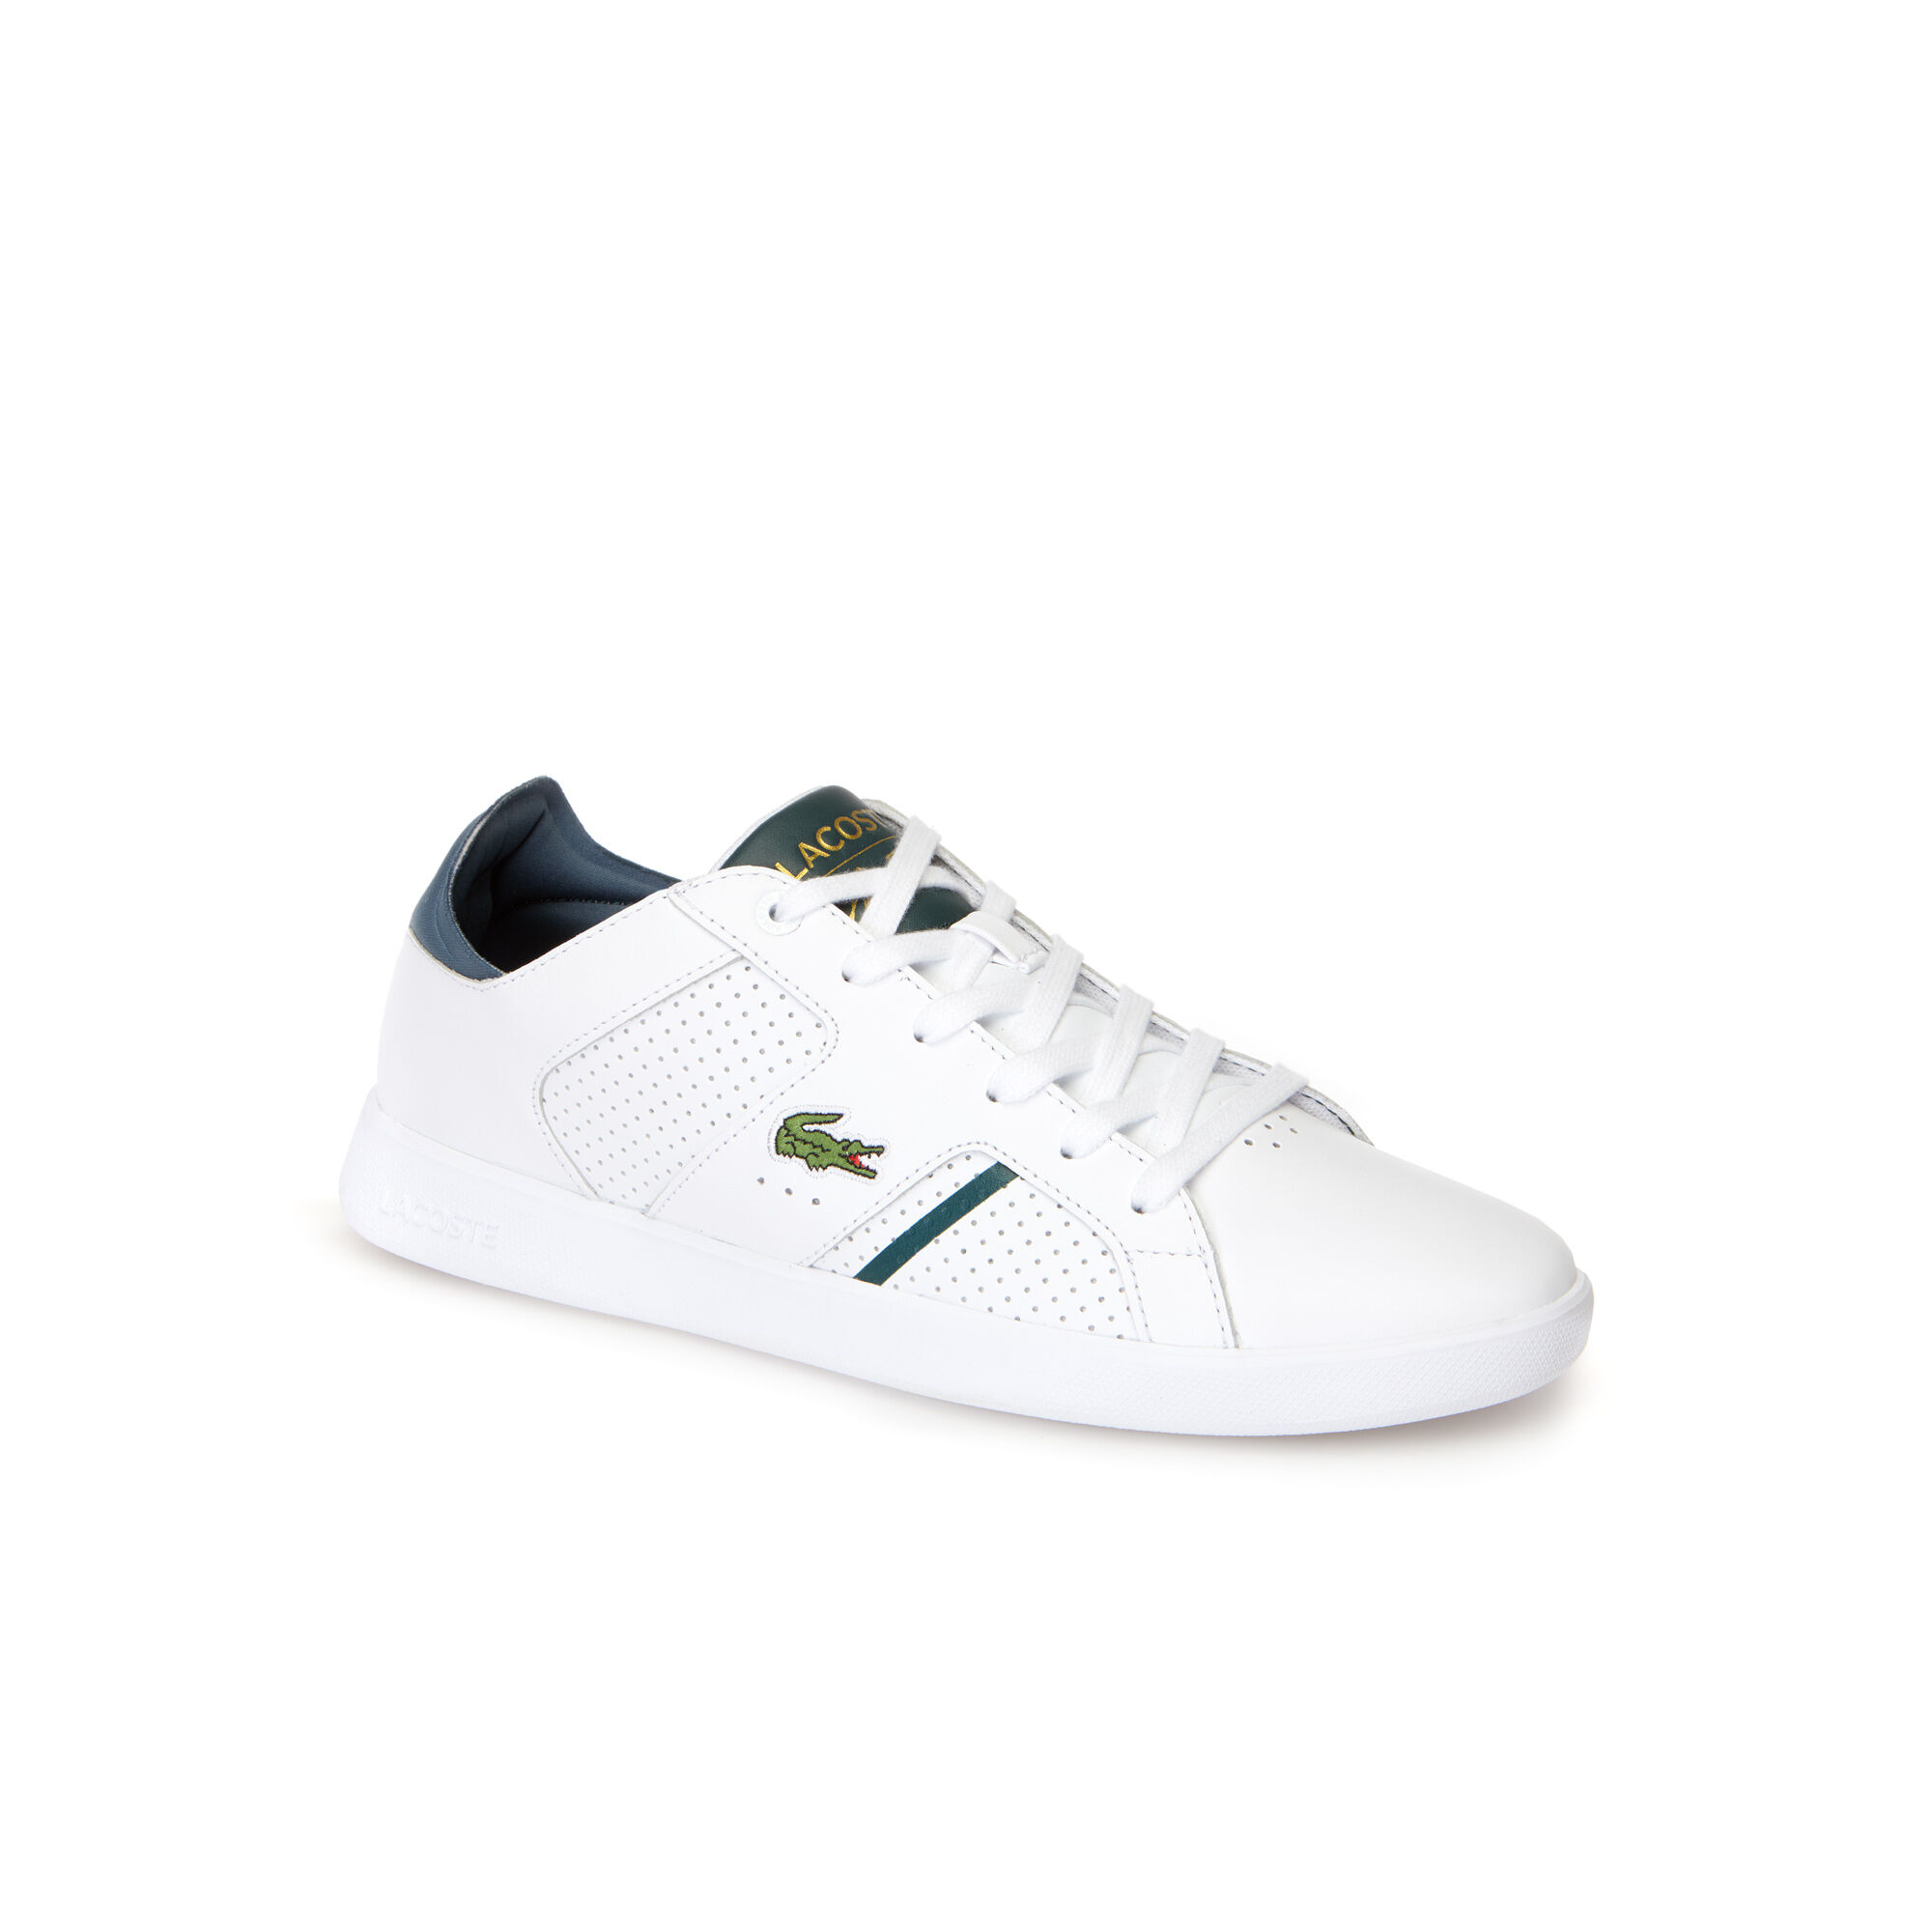 lacoste shoes store near me nycdoe stars program